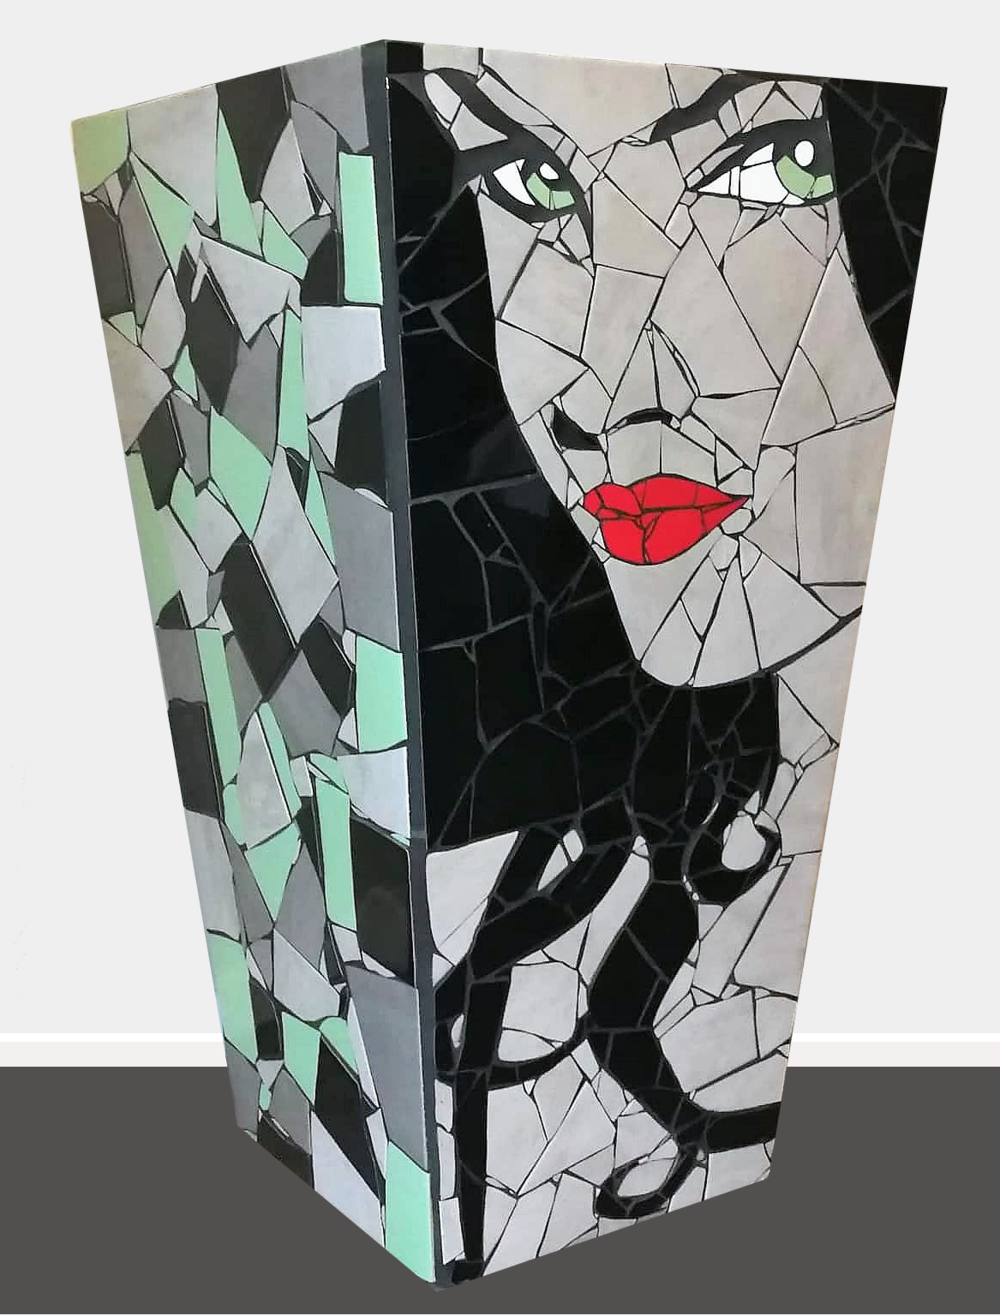 Esmarelda  Danielle Fernandez, pop art mosaic planter, indoor/outdoor (drainage hole at bottom), 815mm x 470mm. Esmarelda comes from 'Esmarelda Villa Lobos', the taxi driver in the movie 'Pulp Fiction'. She was a dark haired beauty with red lips and a gorgeous Spanish accent.   $5,900.00